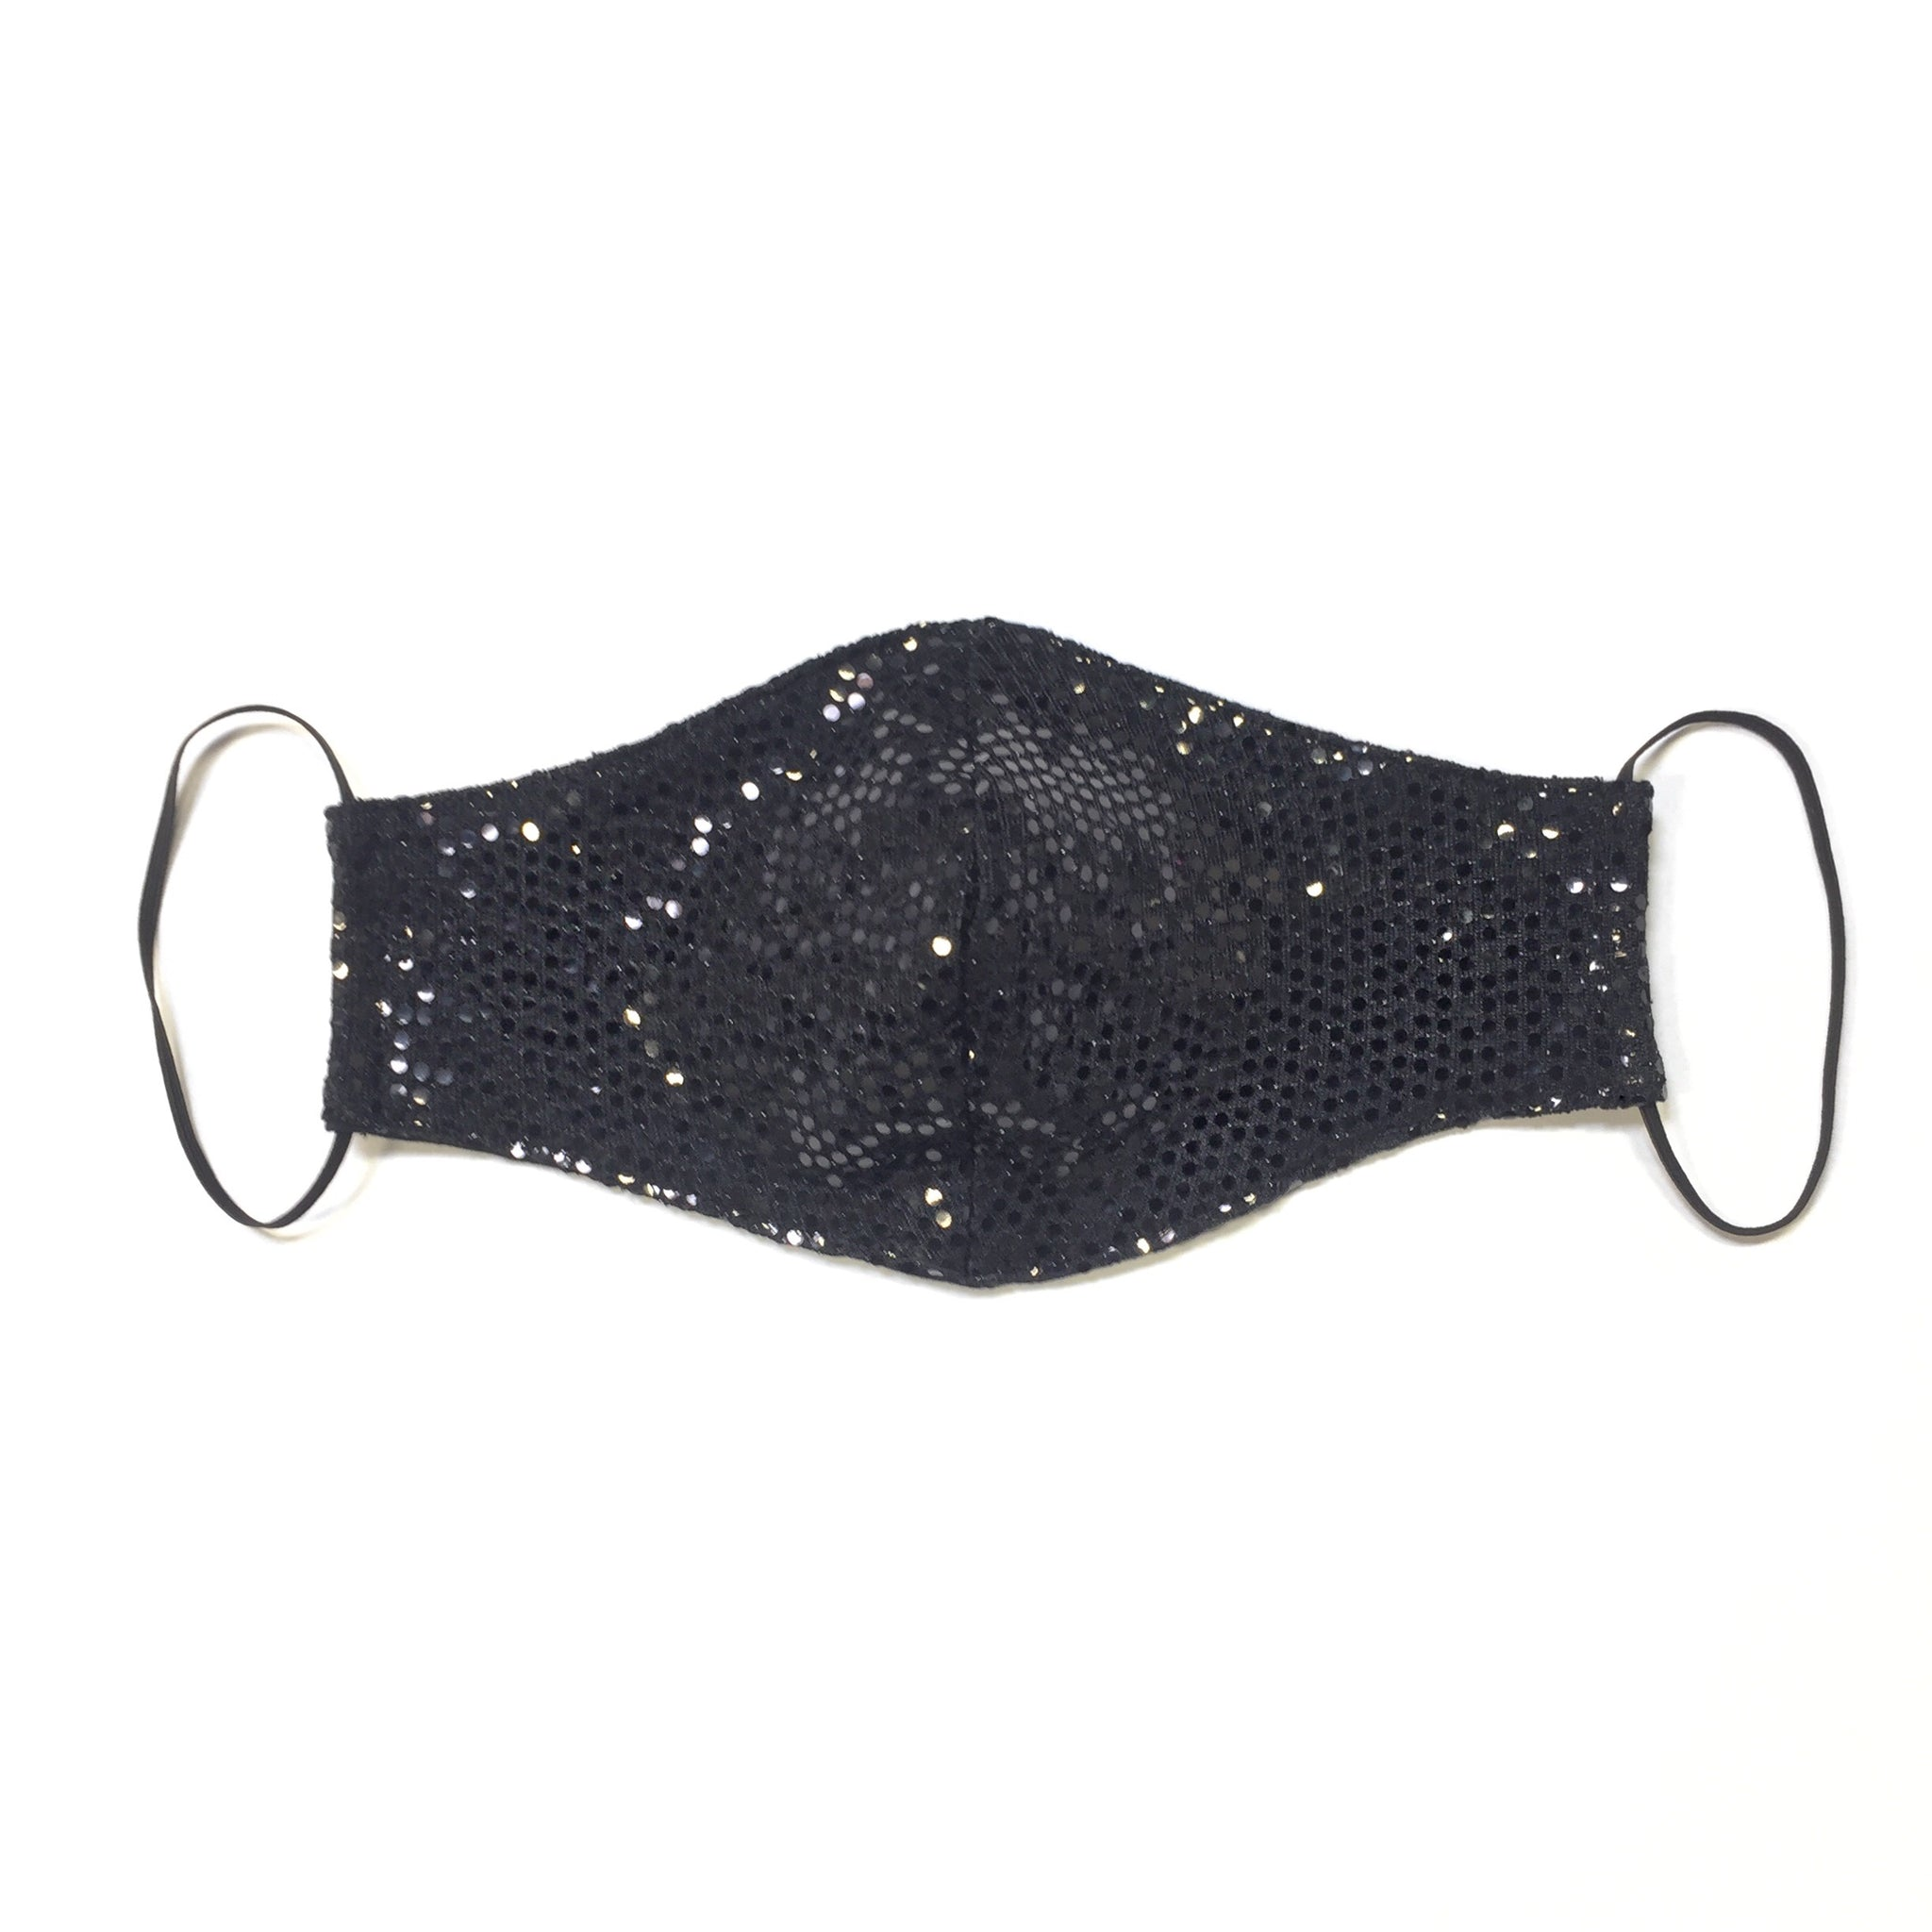 METALLIC BLACK DOTTED FACE MASK